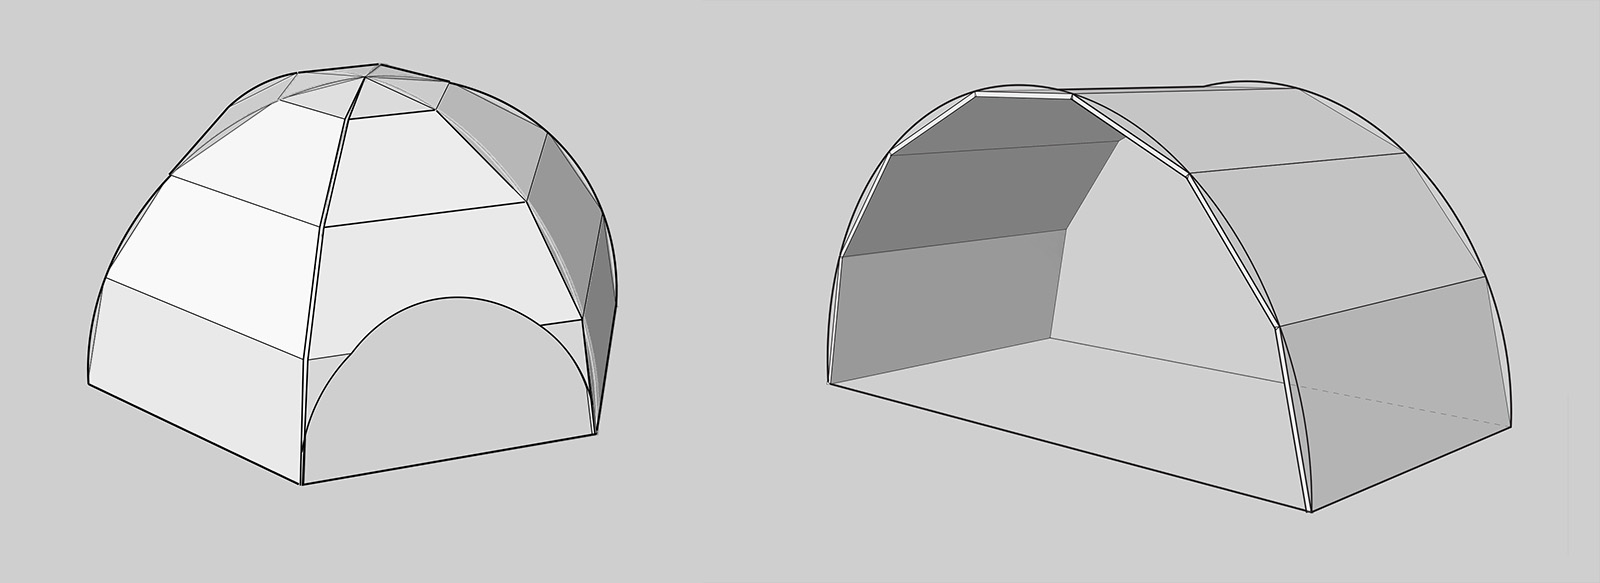 igloo and dome comparisons